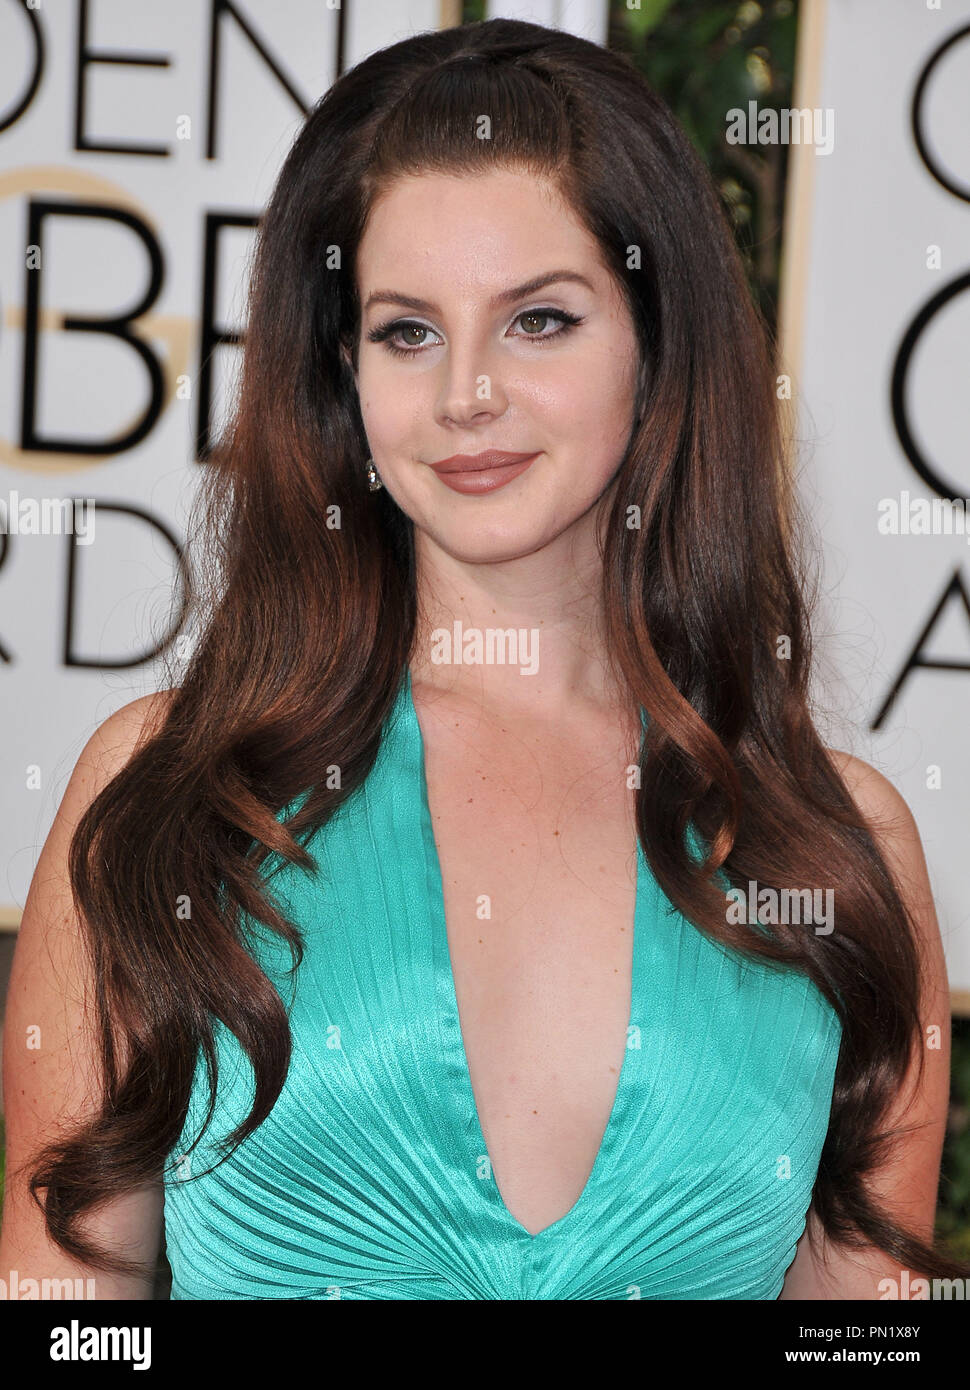 Lana Del Rey At The 72nd Annual Golden Globe Awards Held At The Beverly Hilton In